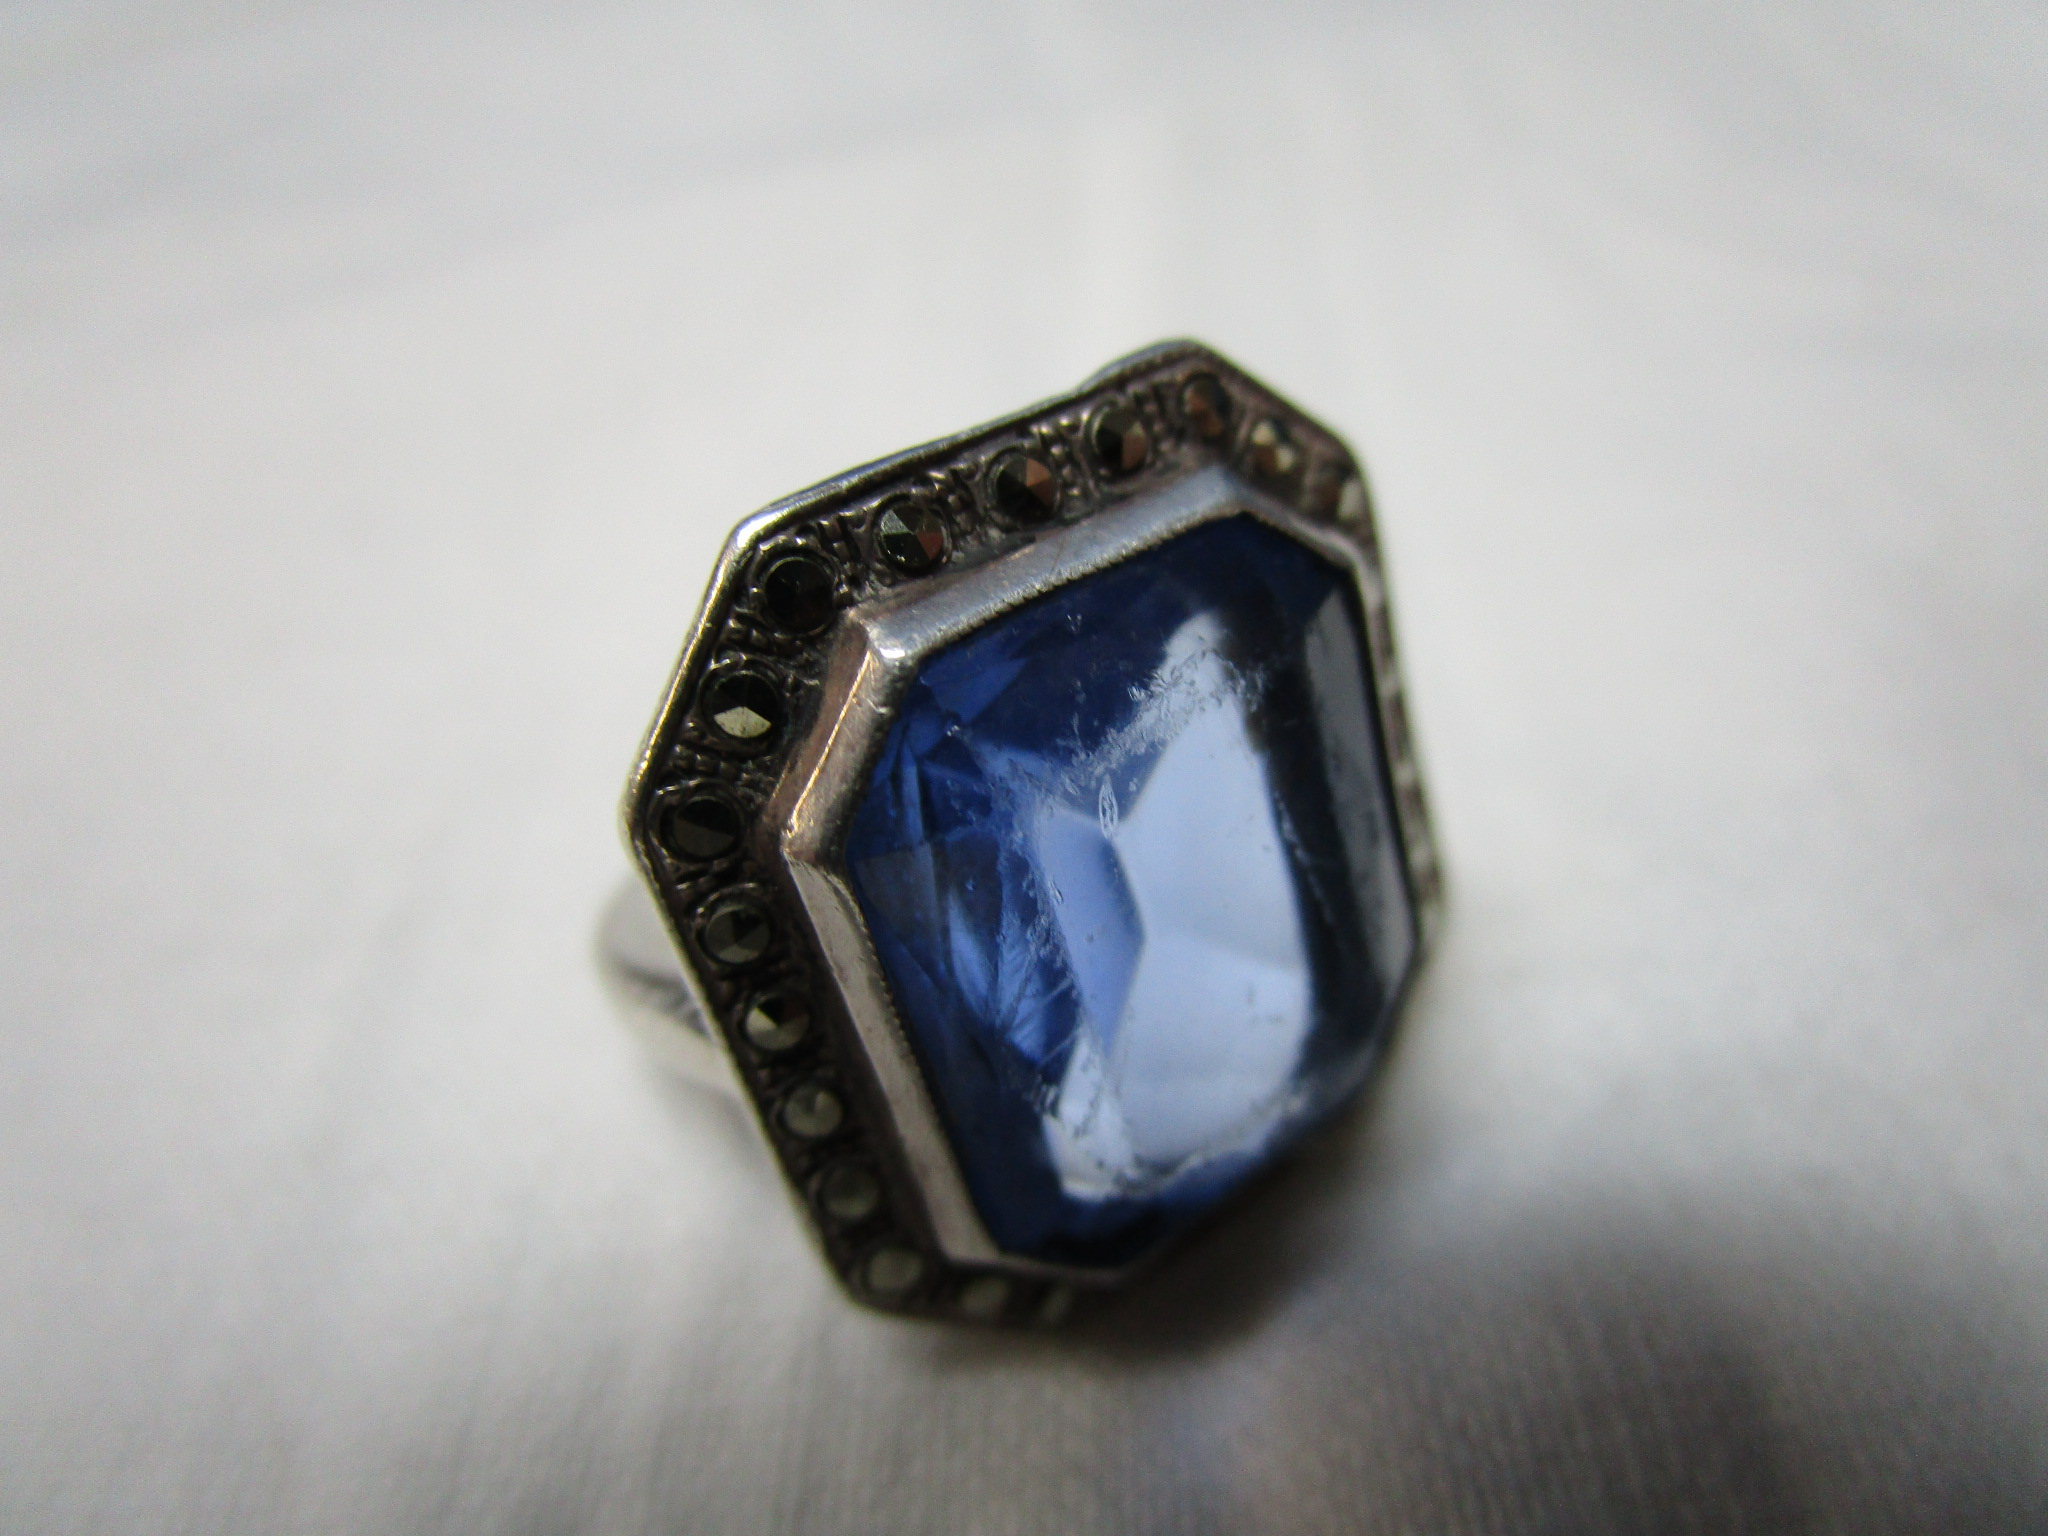 $45 - Sterling Silver Ring with Marcasites and Blue Topaz - Nice